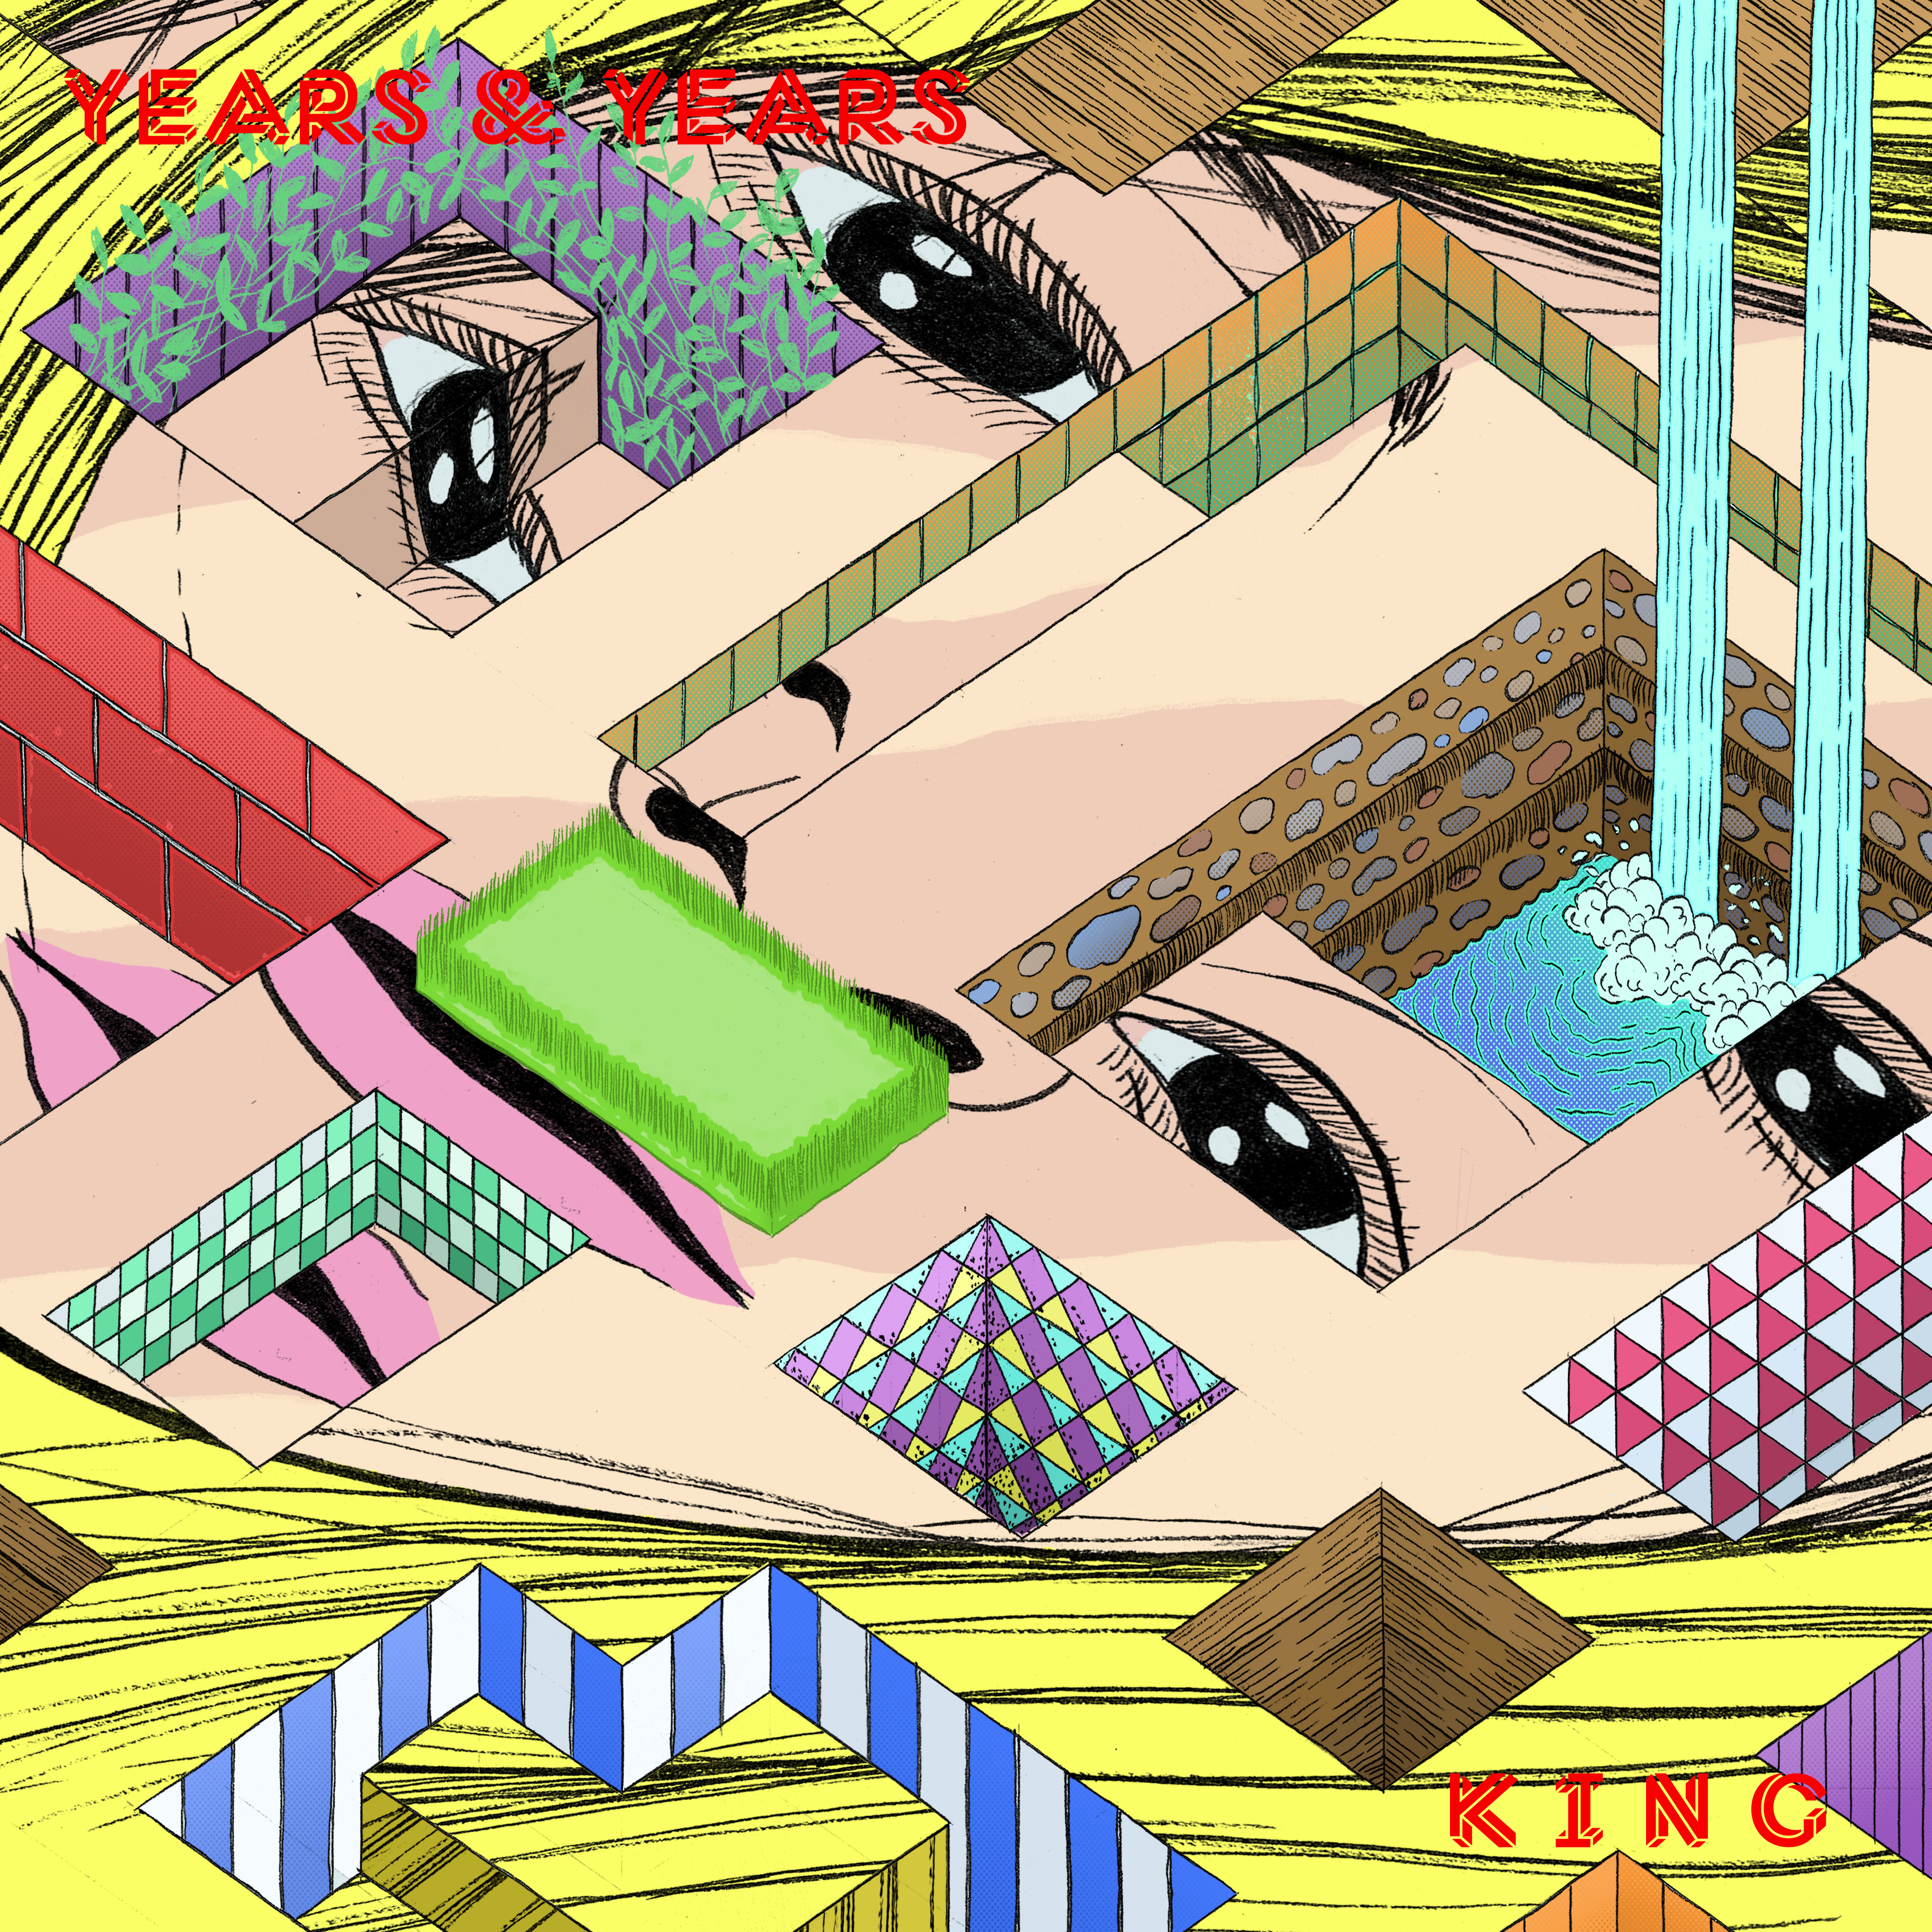 """Years & Years – """"King (TCTS Remix)"""" (Stereogum Premiere)"""